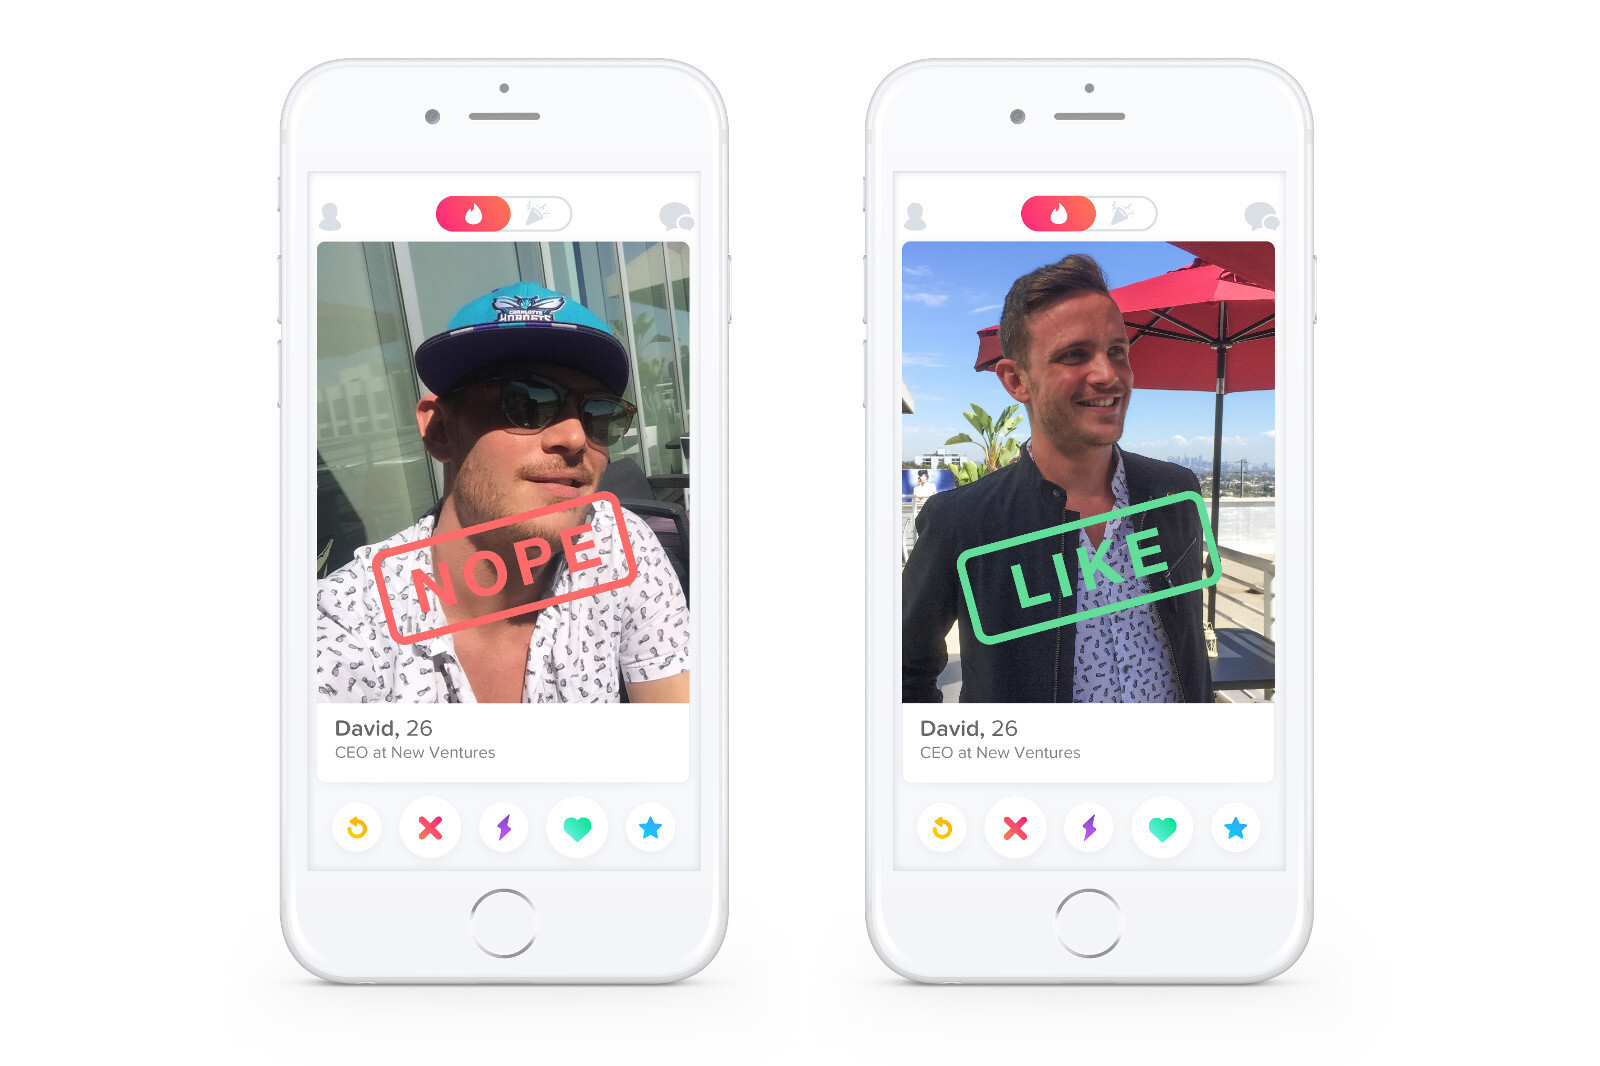 The complete Tinder guide or how to get a date for